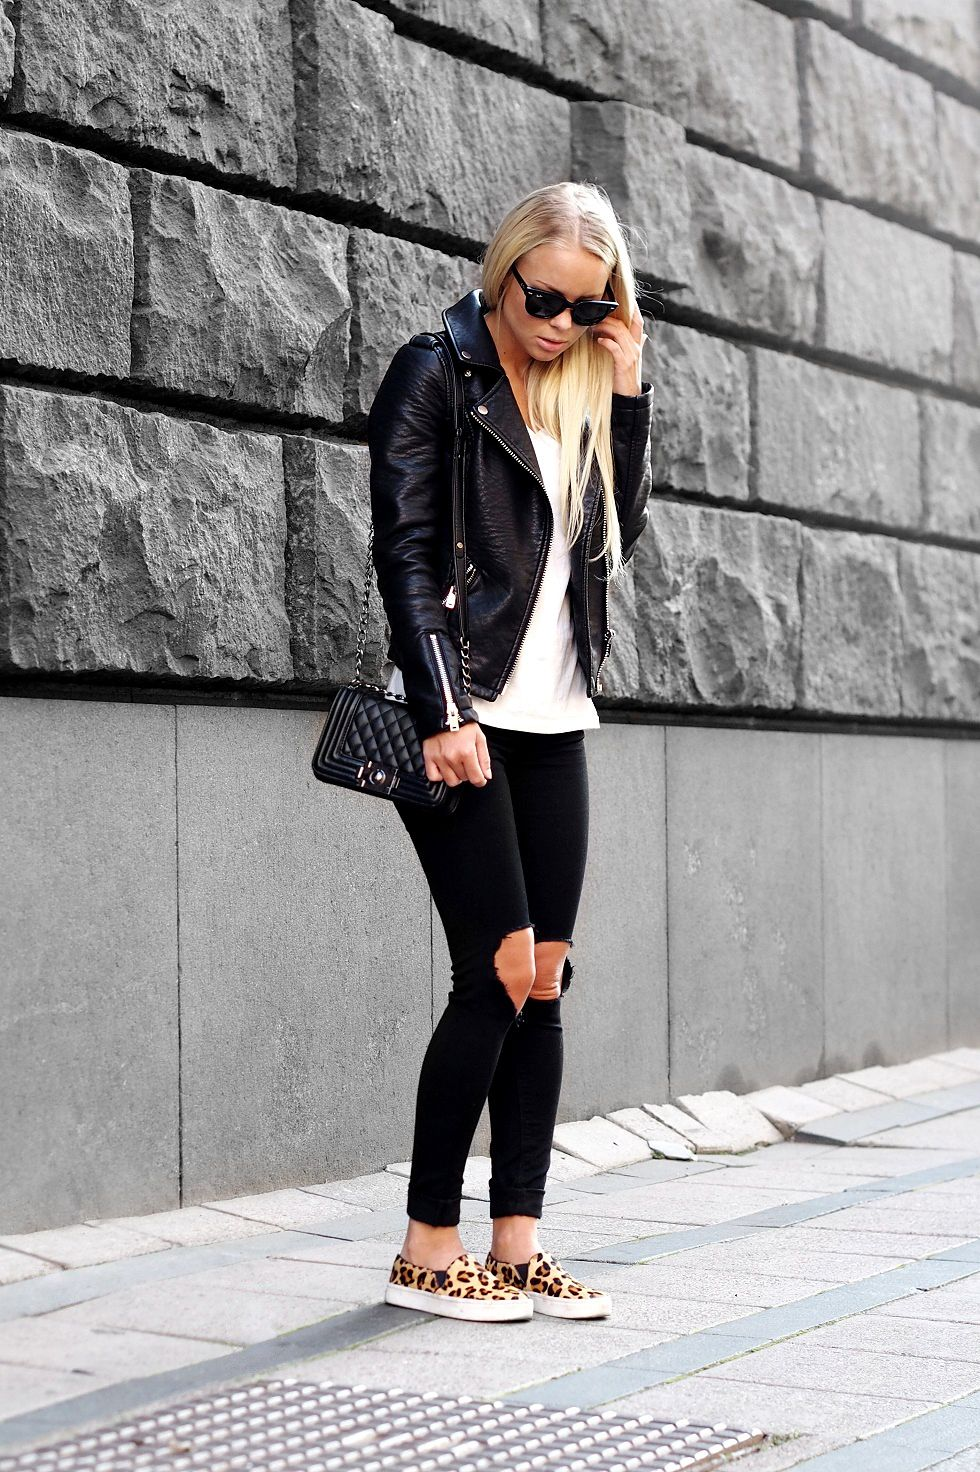 Victoria Tornegren  How to Look Chic and Cool On a Budget in 2019 ... b283f4919994